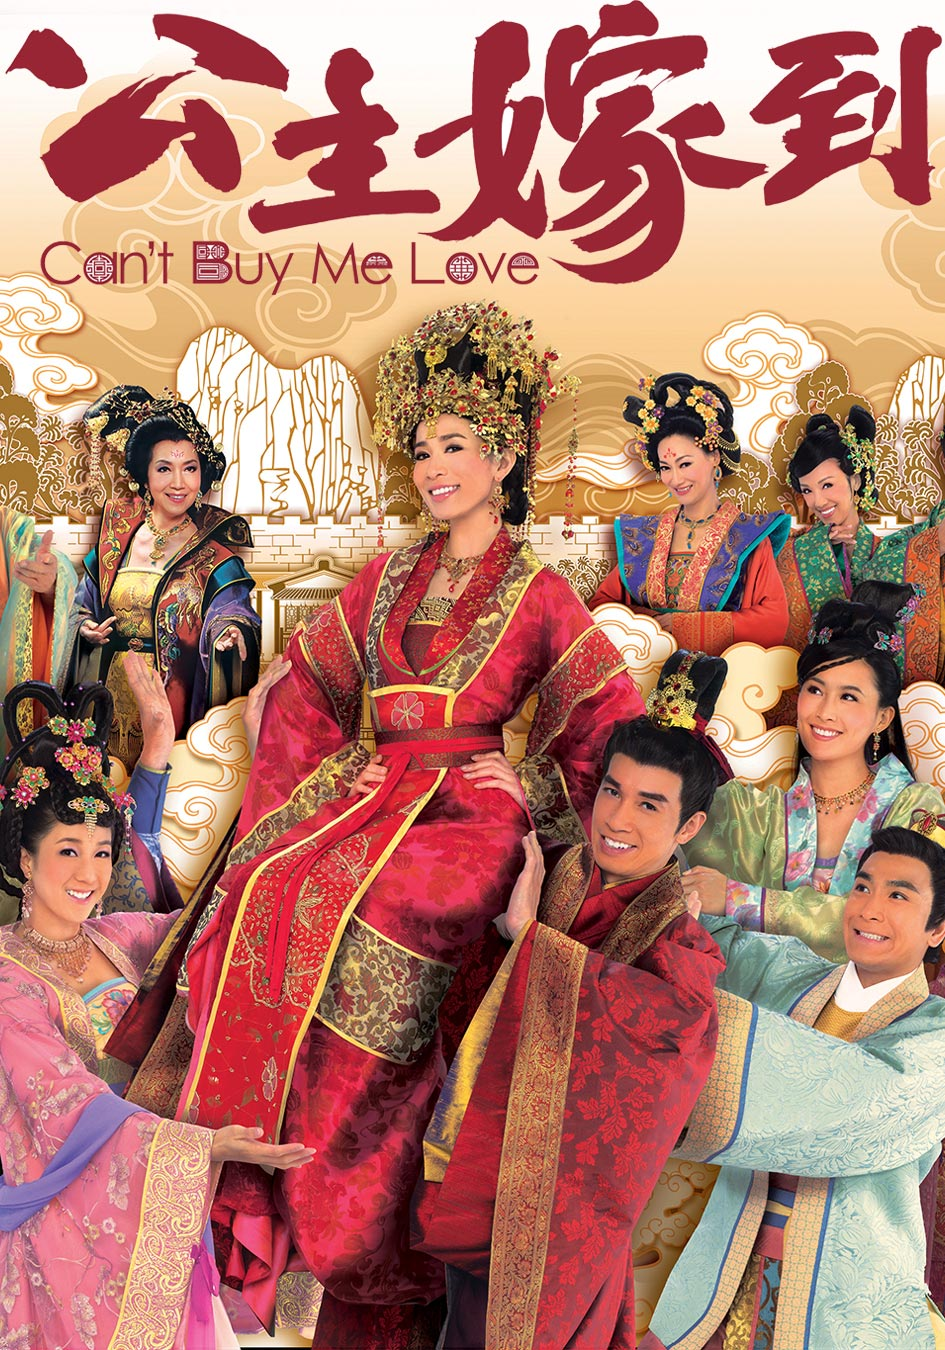 公主嫁到-Can't Buy Me Love